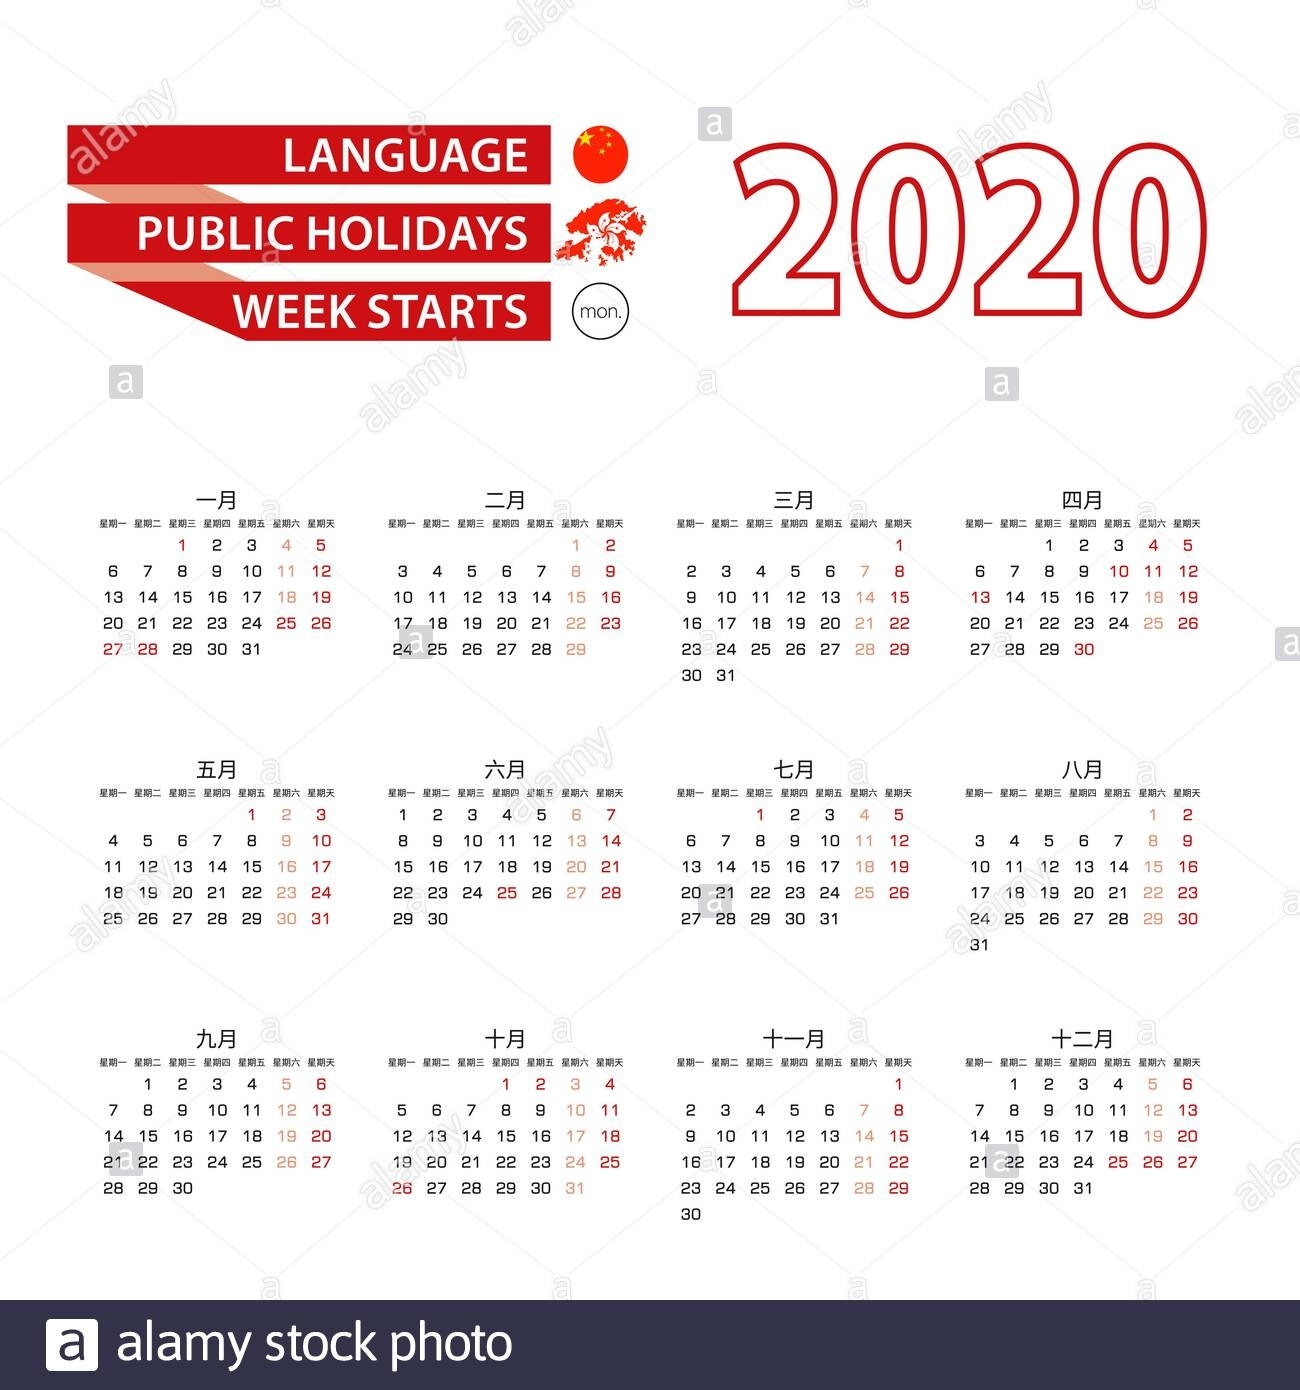 Calendar 2020 In Chinese Language With Public Holidays The